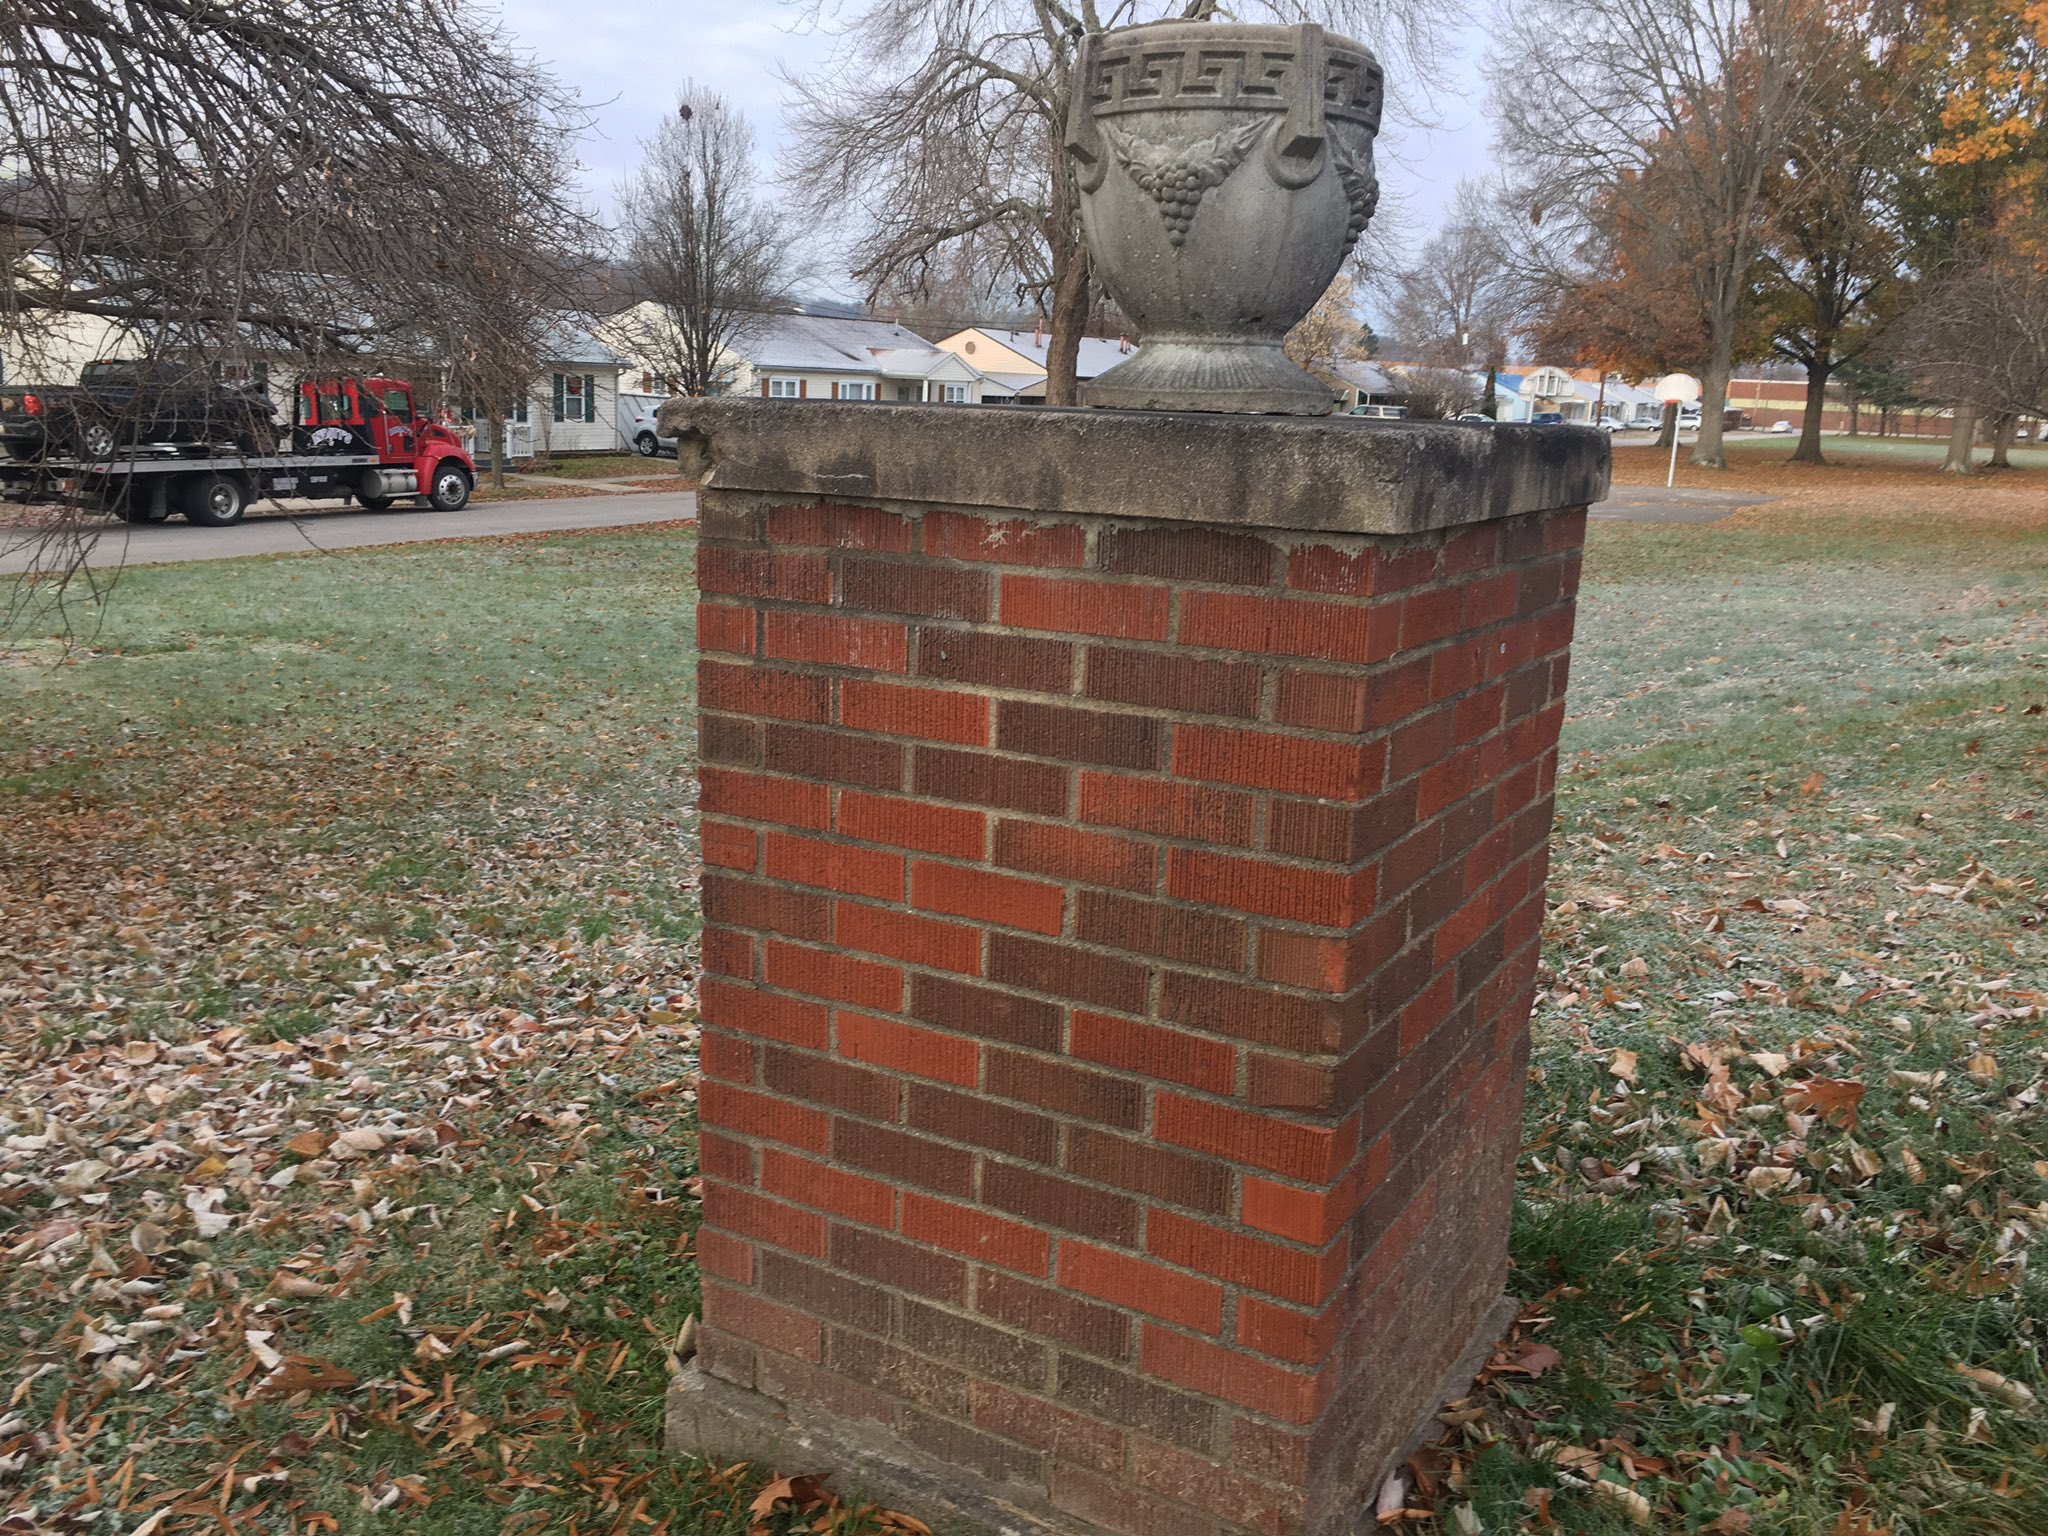 Police said one sustained minor injuries from the crash.{&amp;nbsp;} The decorative wall that was destroyed in the crash was similar to the one pictured. (WCHS/WVAH)<p></p>